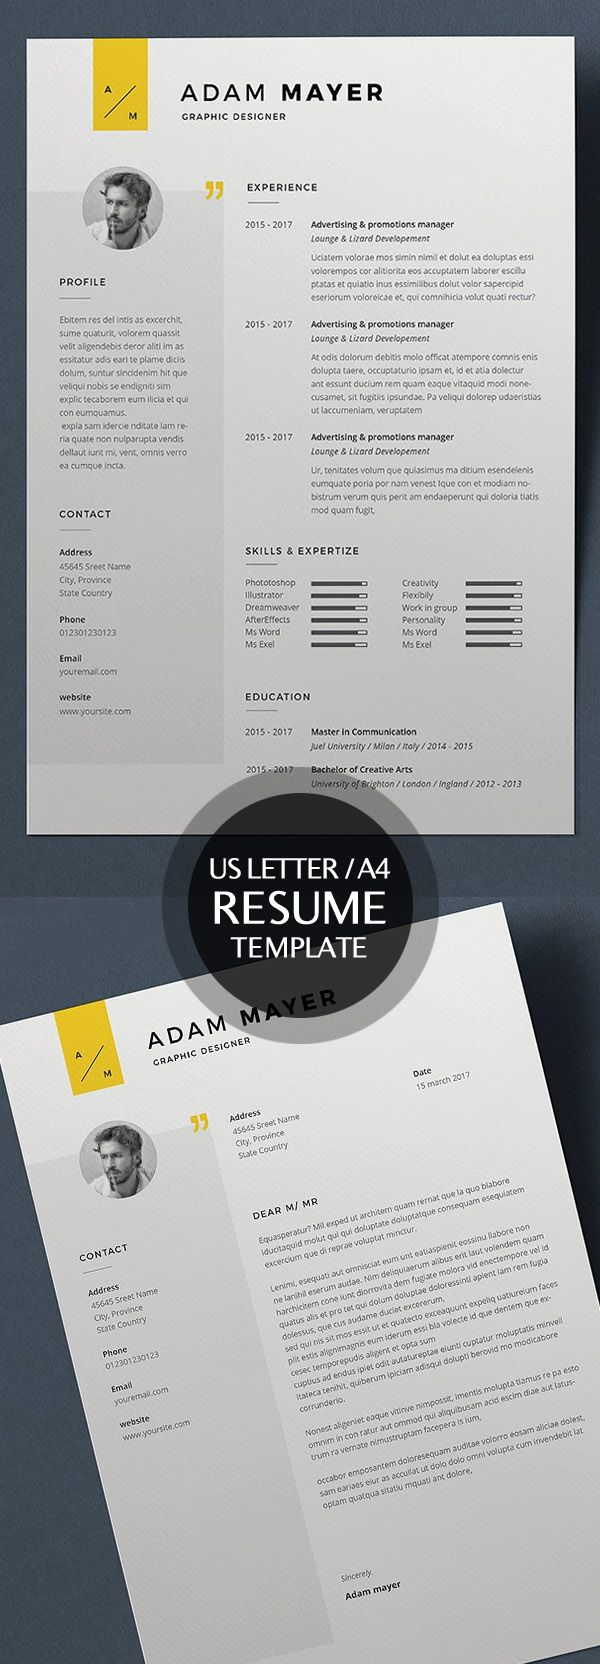 best 25 cv template ideas on pinterest layout cv creative cv design and creative cv